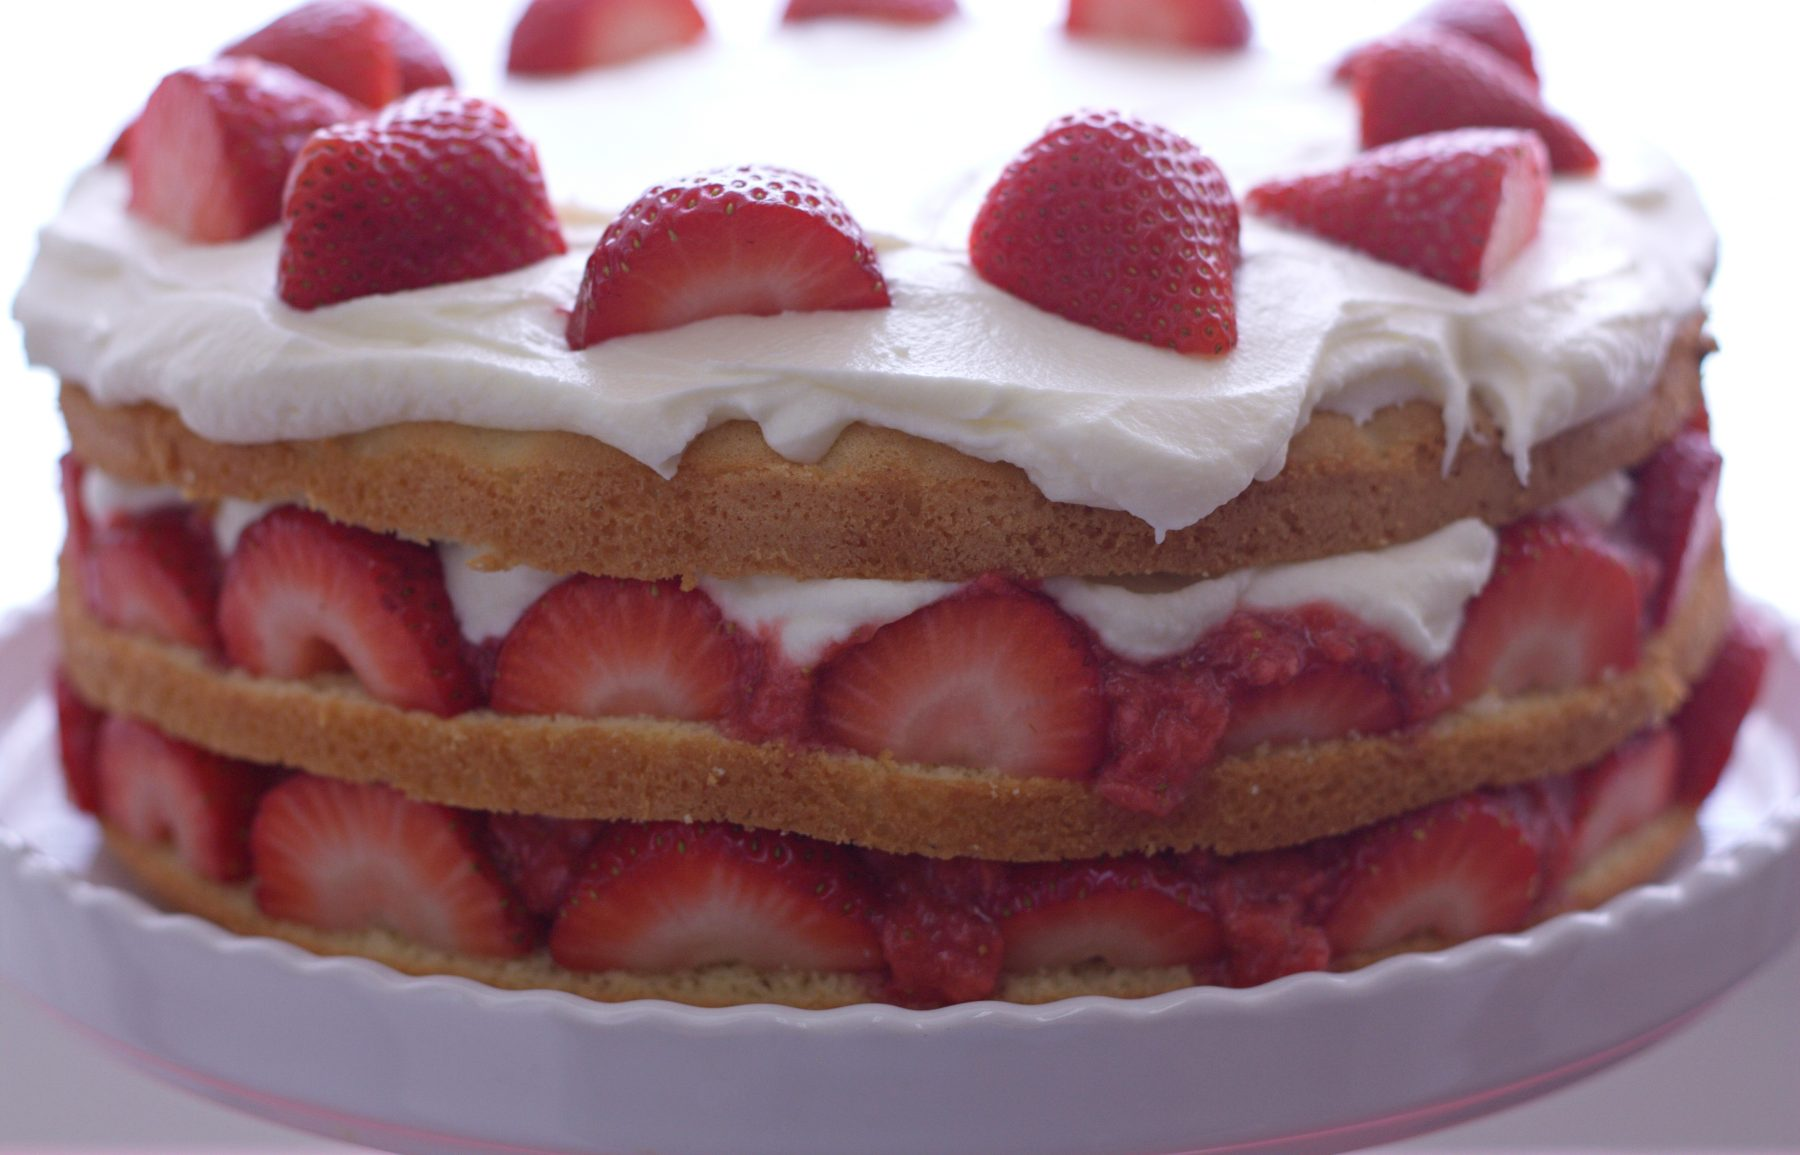 Strawberry Cream Cake • Food, Folks and Fun